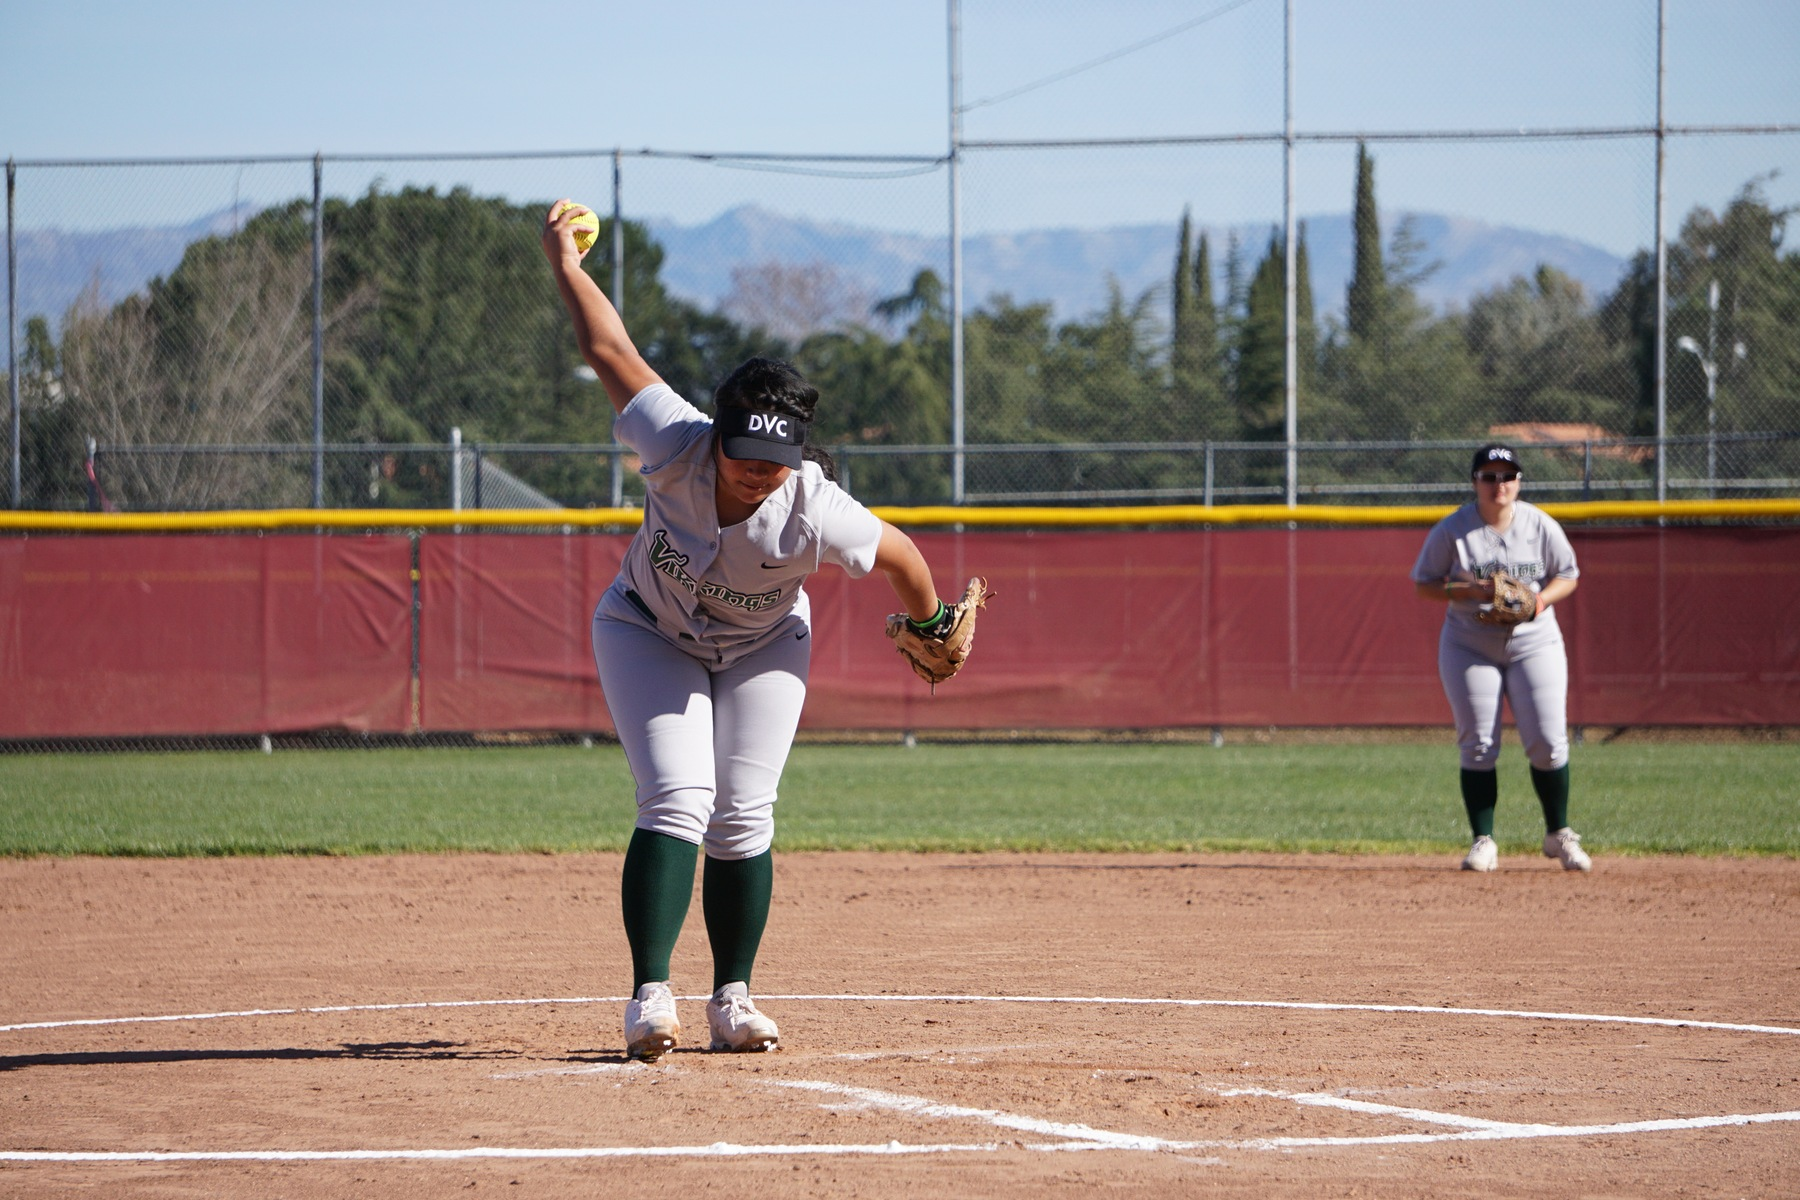 DVC Softball gets the win over Ohlone College